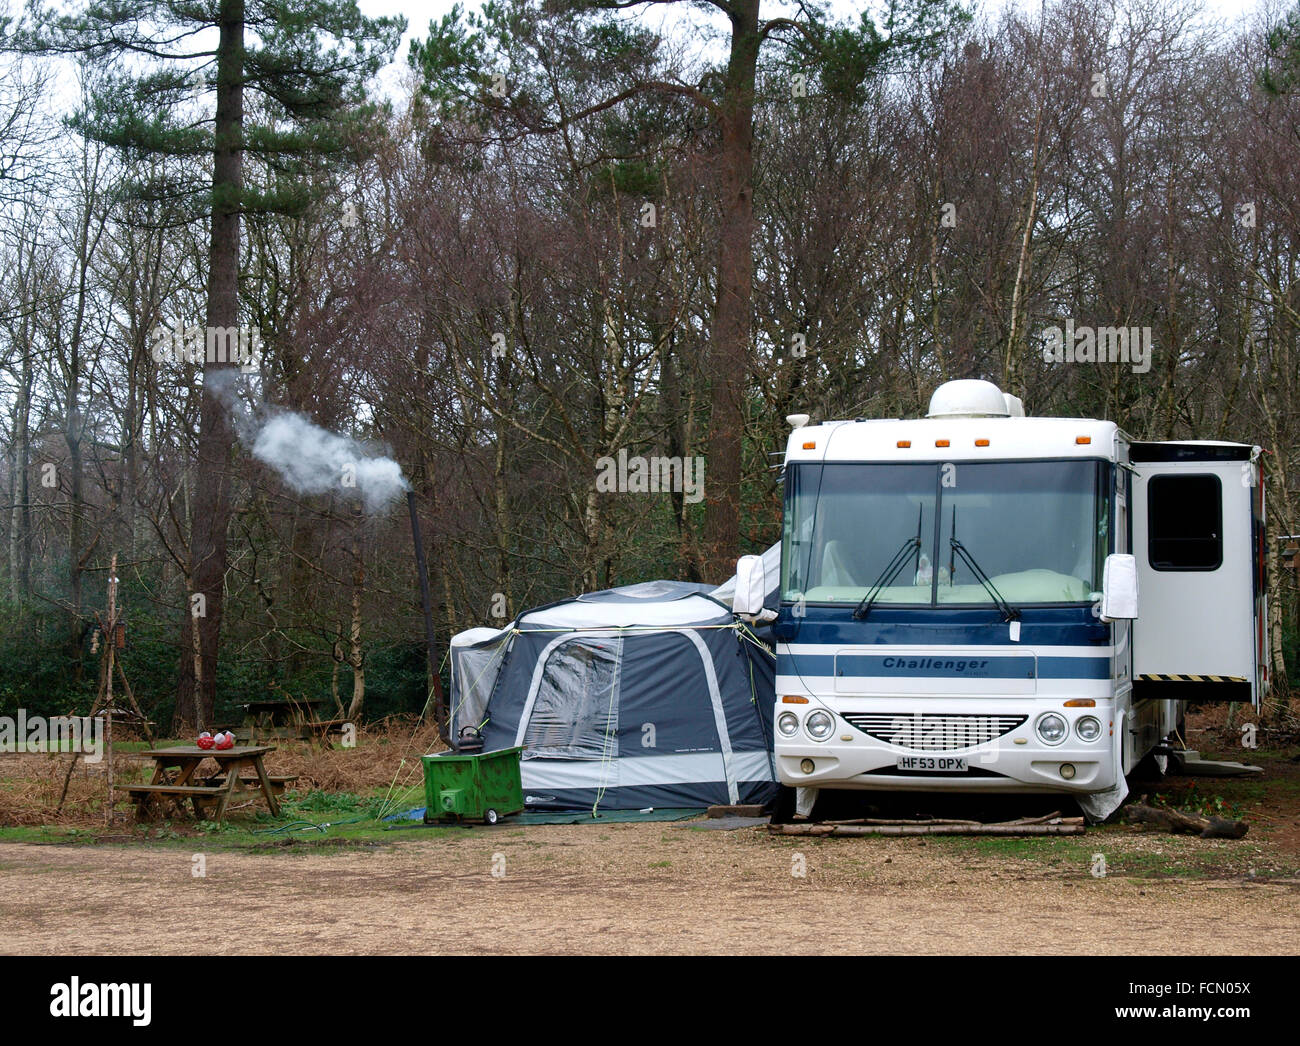 Camping in the Forest, The New Forest, Hampshire, UK - Stock Image